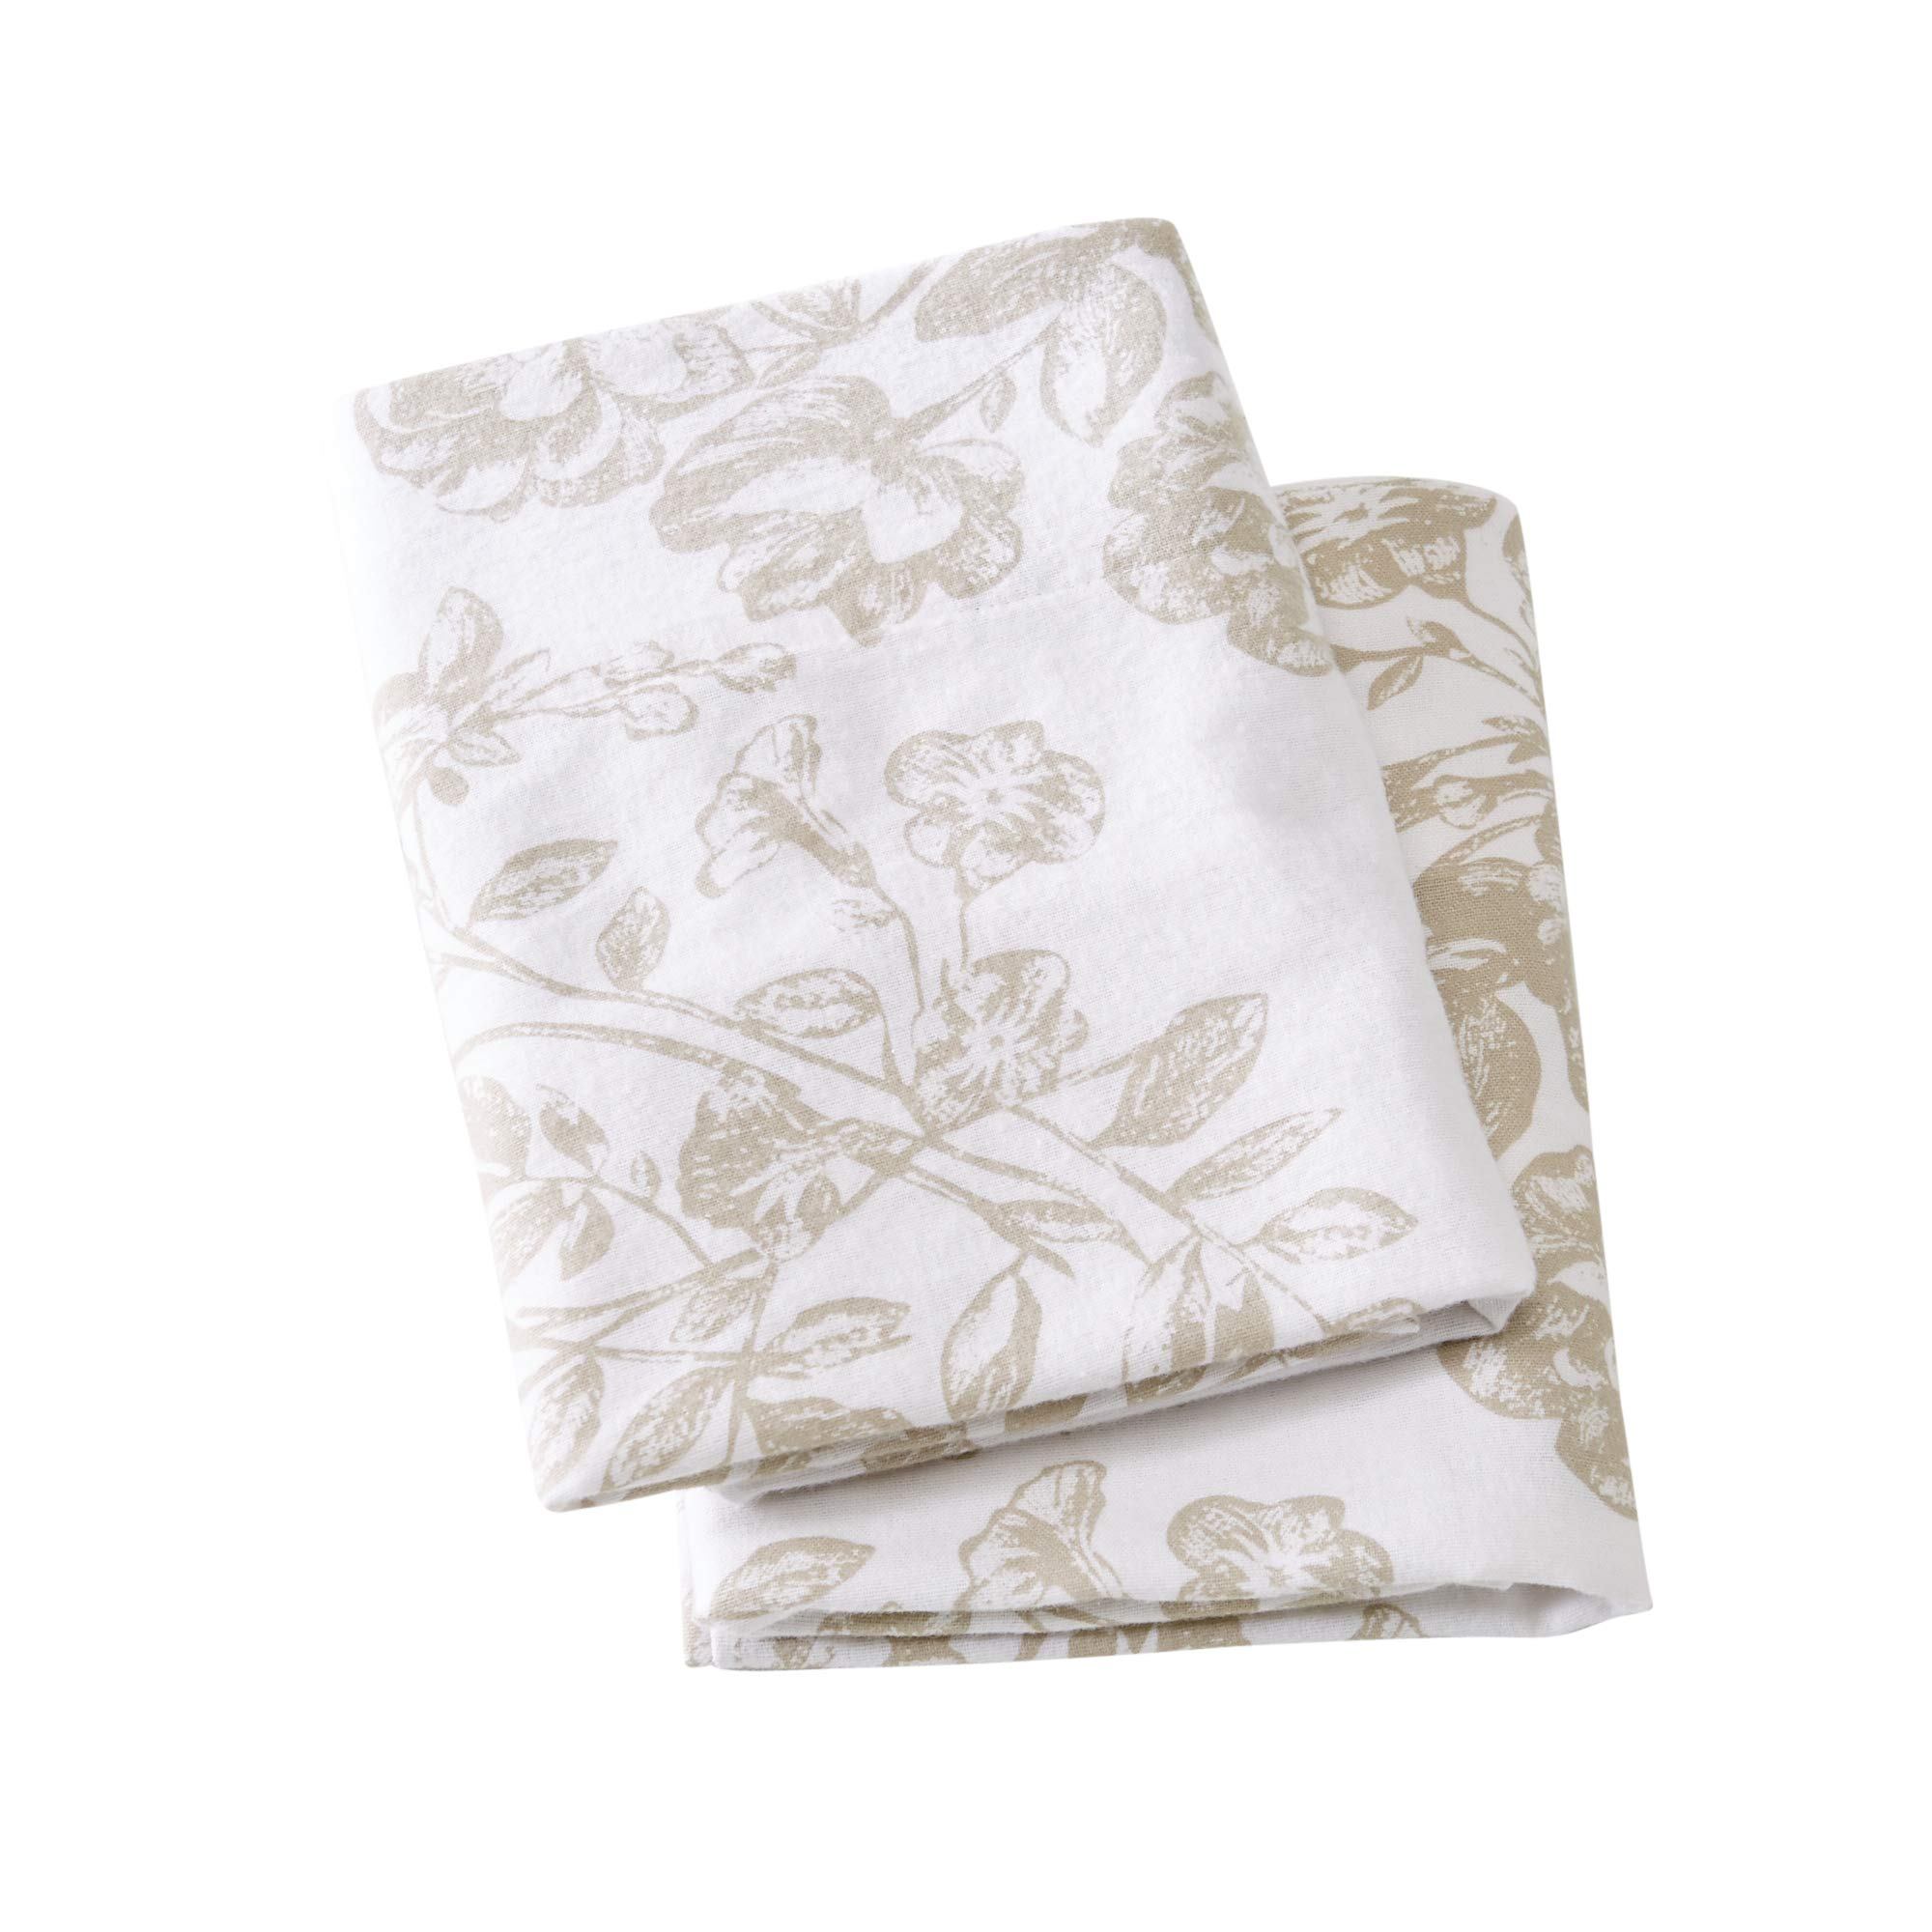 Great Bay Home Extra Soft Toile 100% Turkish Cotton Flannel Pillowcases. Warm, Cozy, Luxury Winter Pillowcases. Belle Collection (King, Taupe)